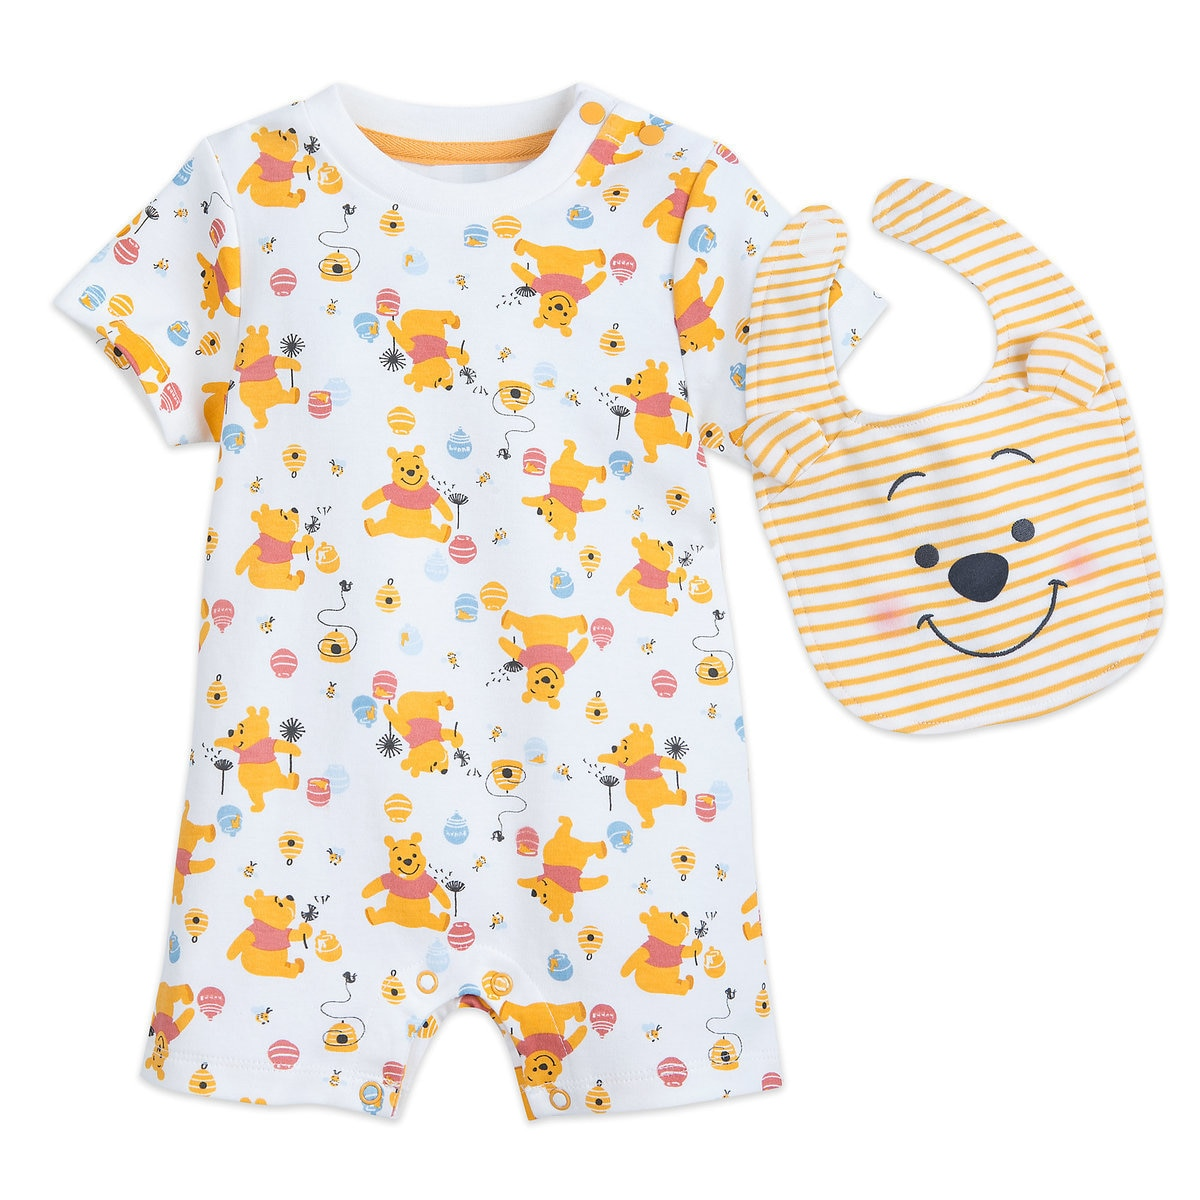 Winnie The Pooh Romper And Bib Set For Baby Shopdisney